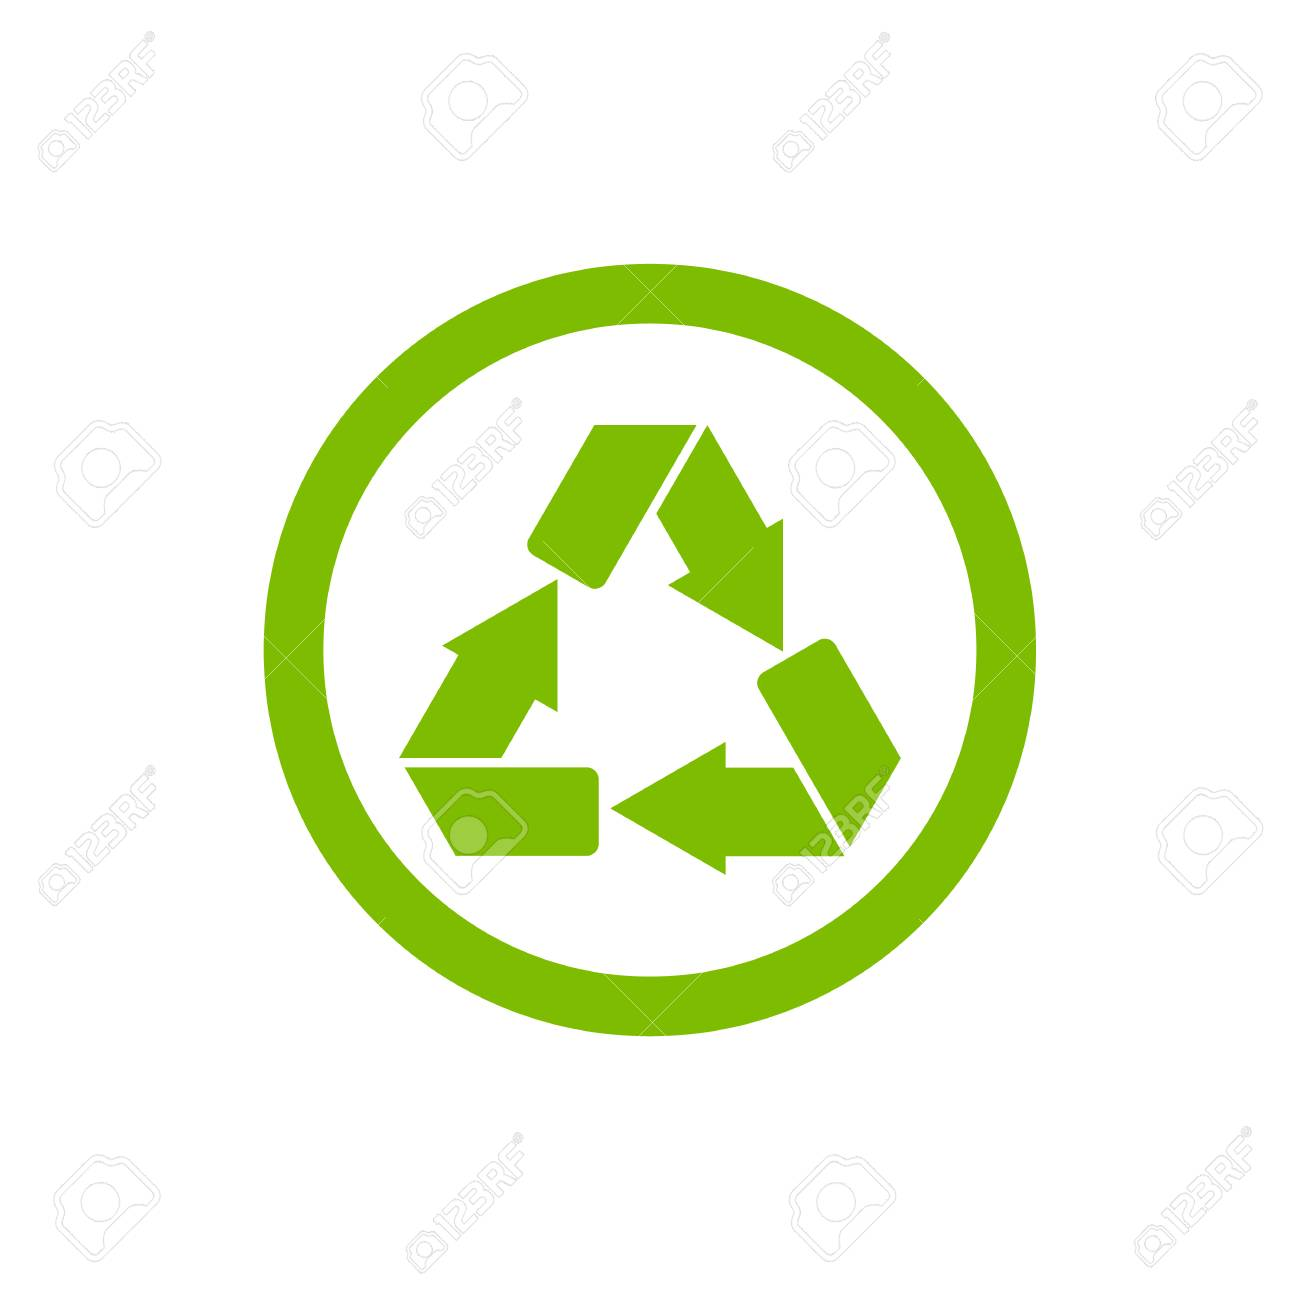 Recycle symbol or sign of conservation green icon isolated on recycle symbol or sign of conservation green icon isolated on white background raster symbol on buycottarizona Images